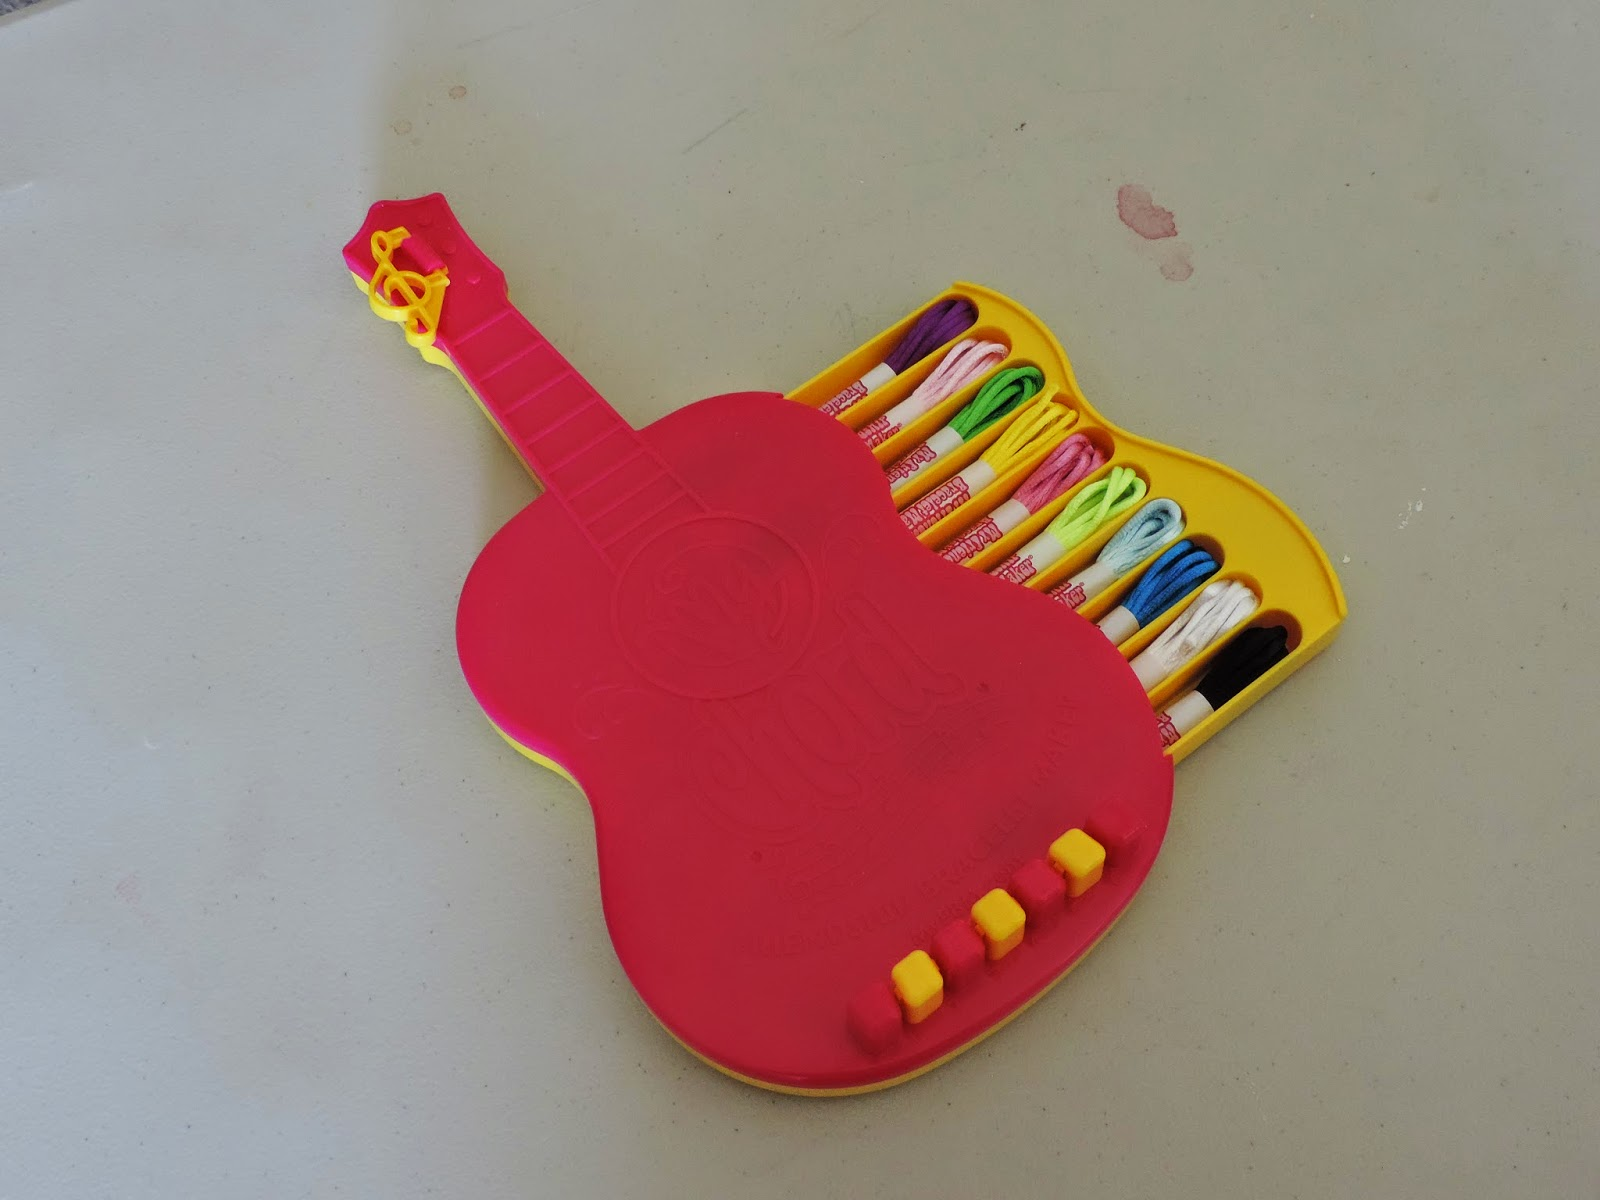 The Guitar Shaped Kit Has A Drawer In The Side, Which Holds An Assortment  Of Colored Satin Cord